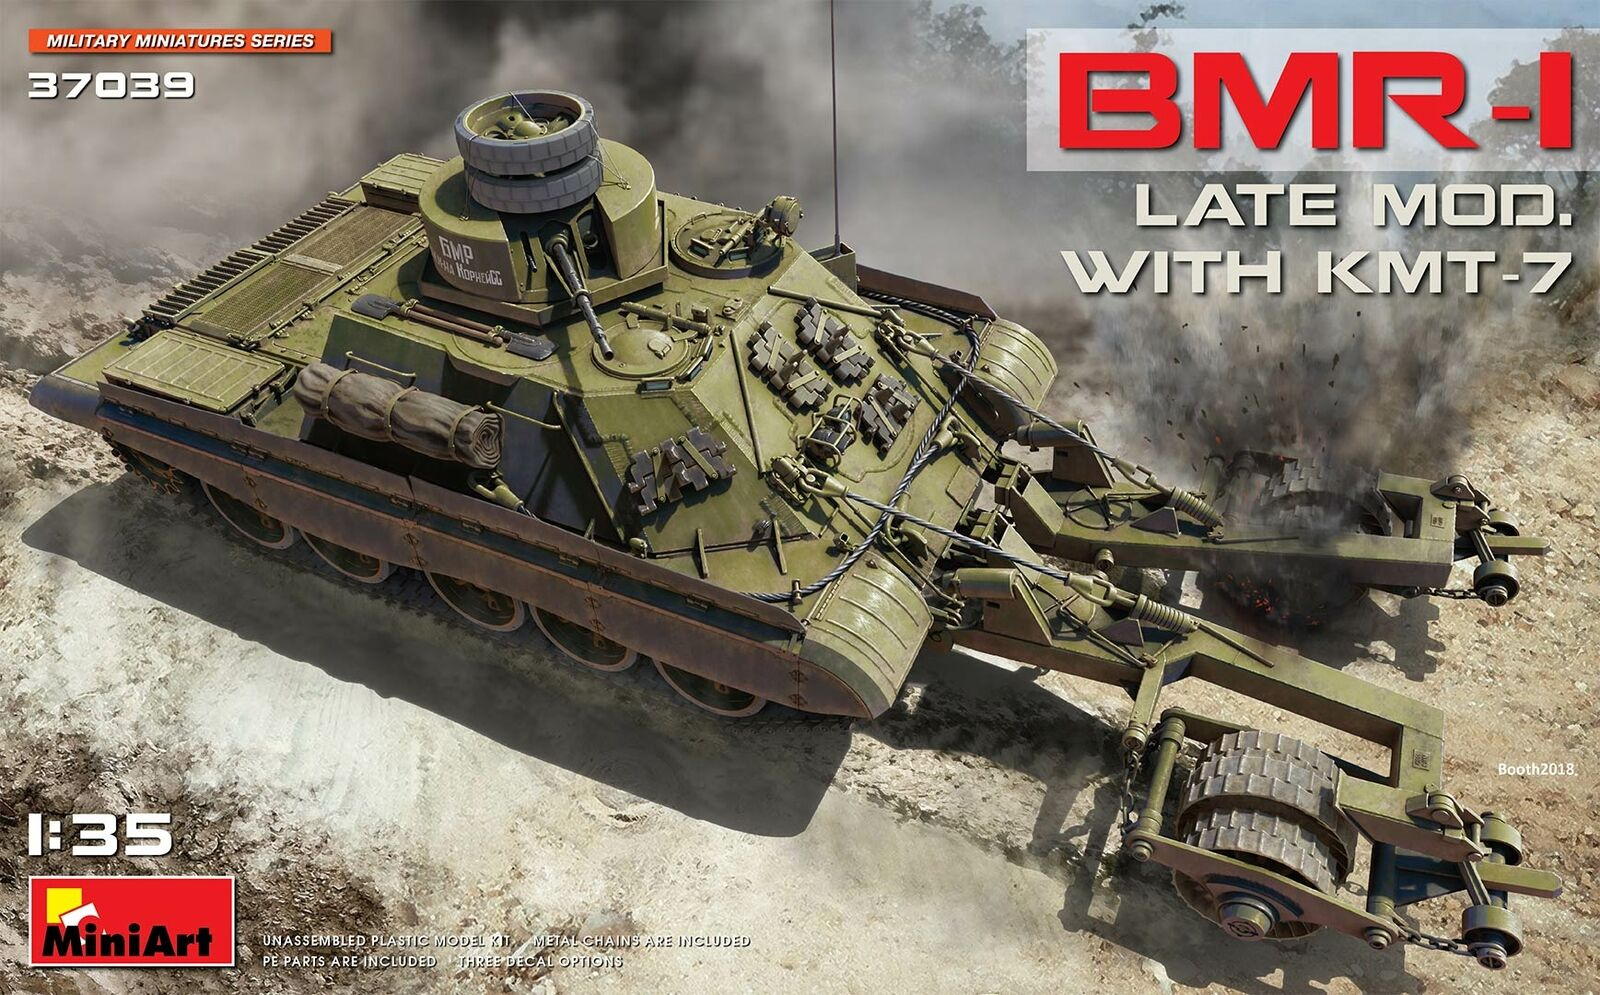 Miniart 1 35 BMR-I Late Mod. with KMT-7